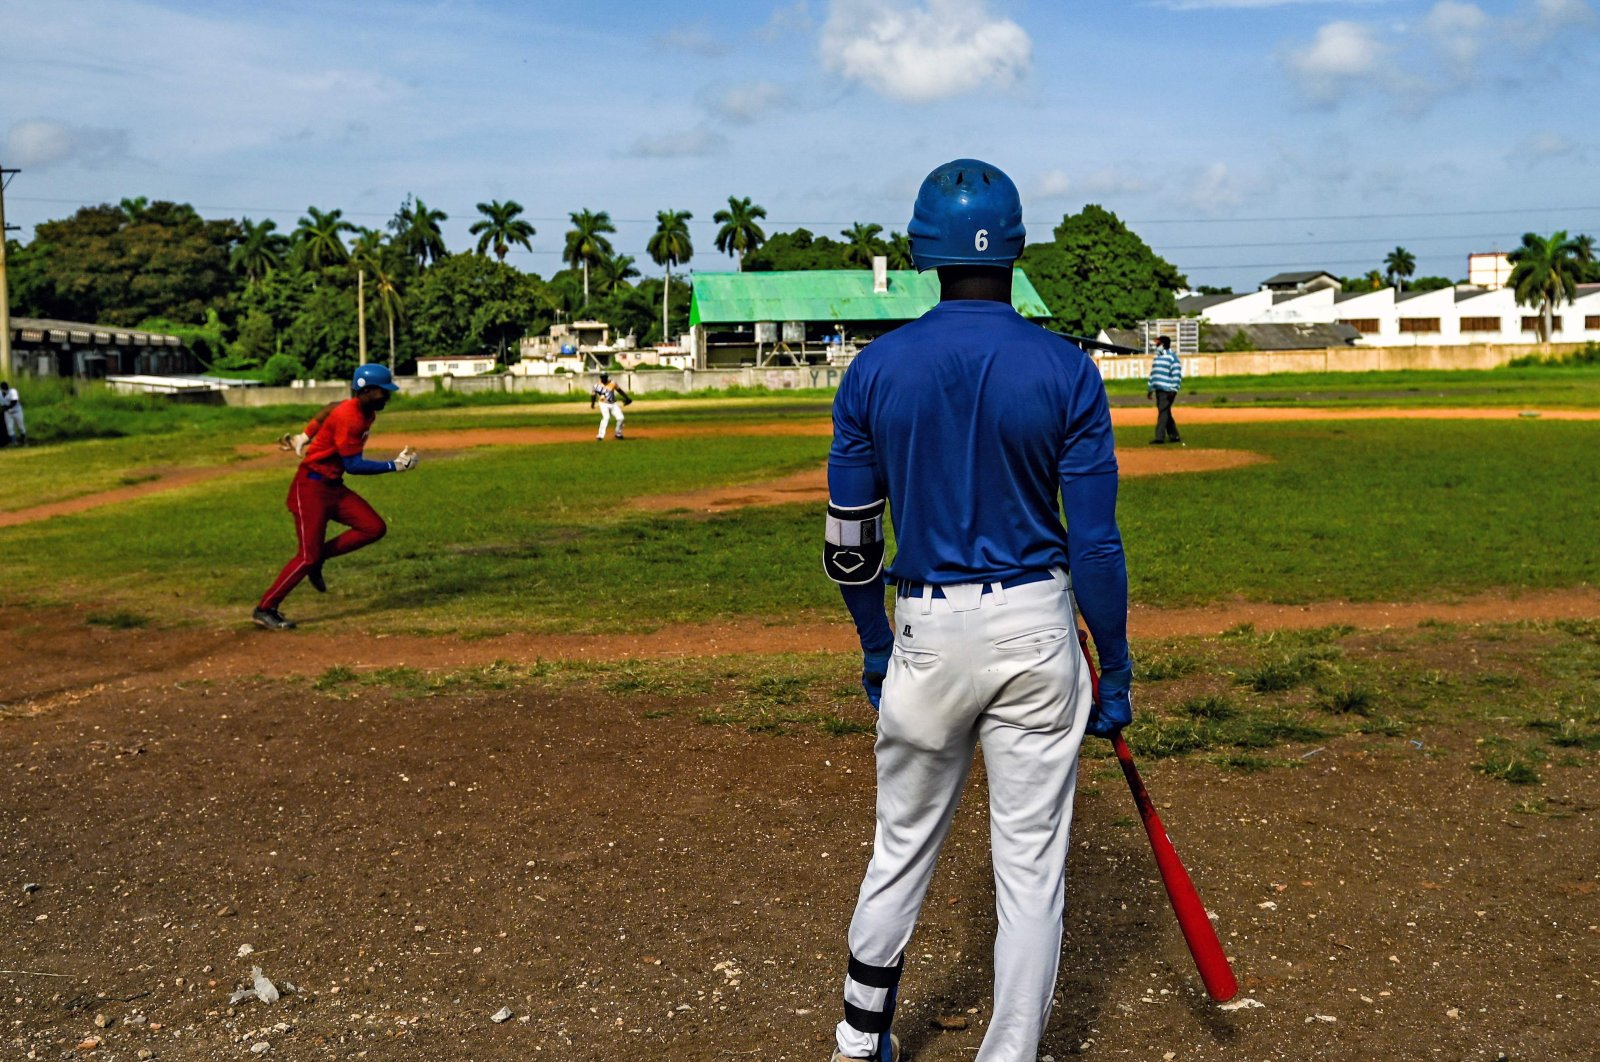 Baseball players play with friends at a field in Havana, Cuba, Oct. 7, 2021. (AFP PHOTO)